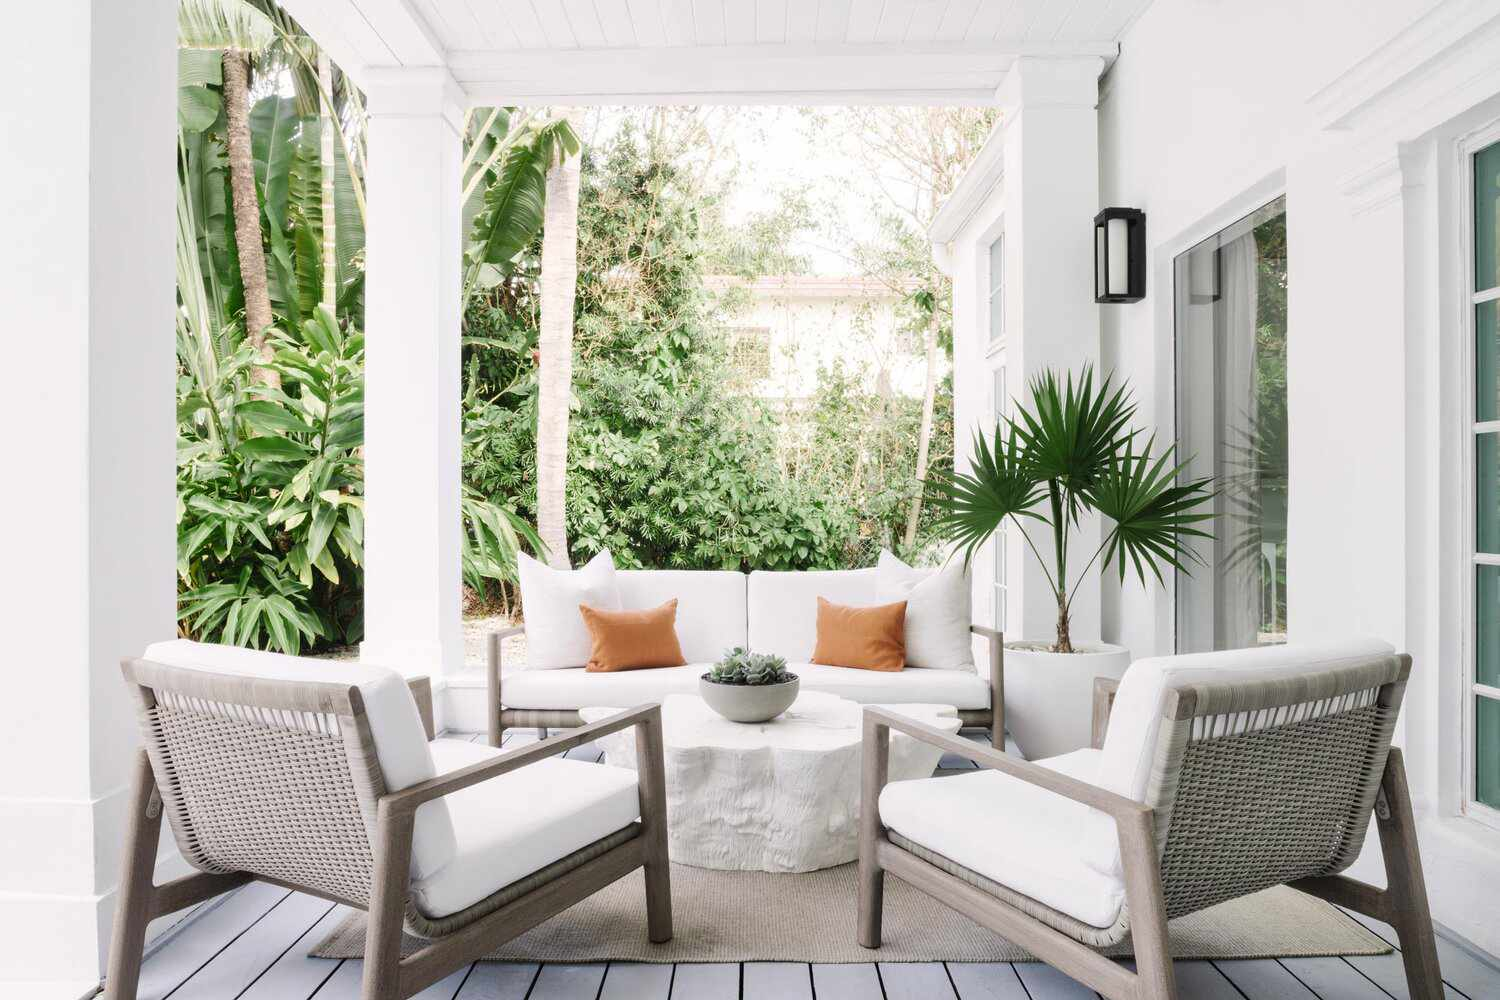 Tropical outdoor space with white sofa and orange throw pillows.